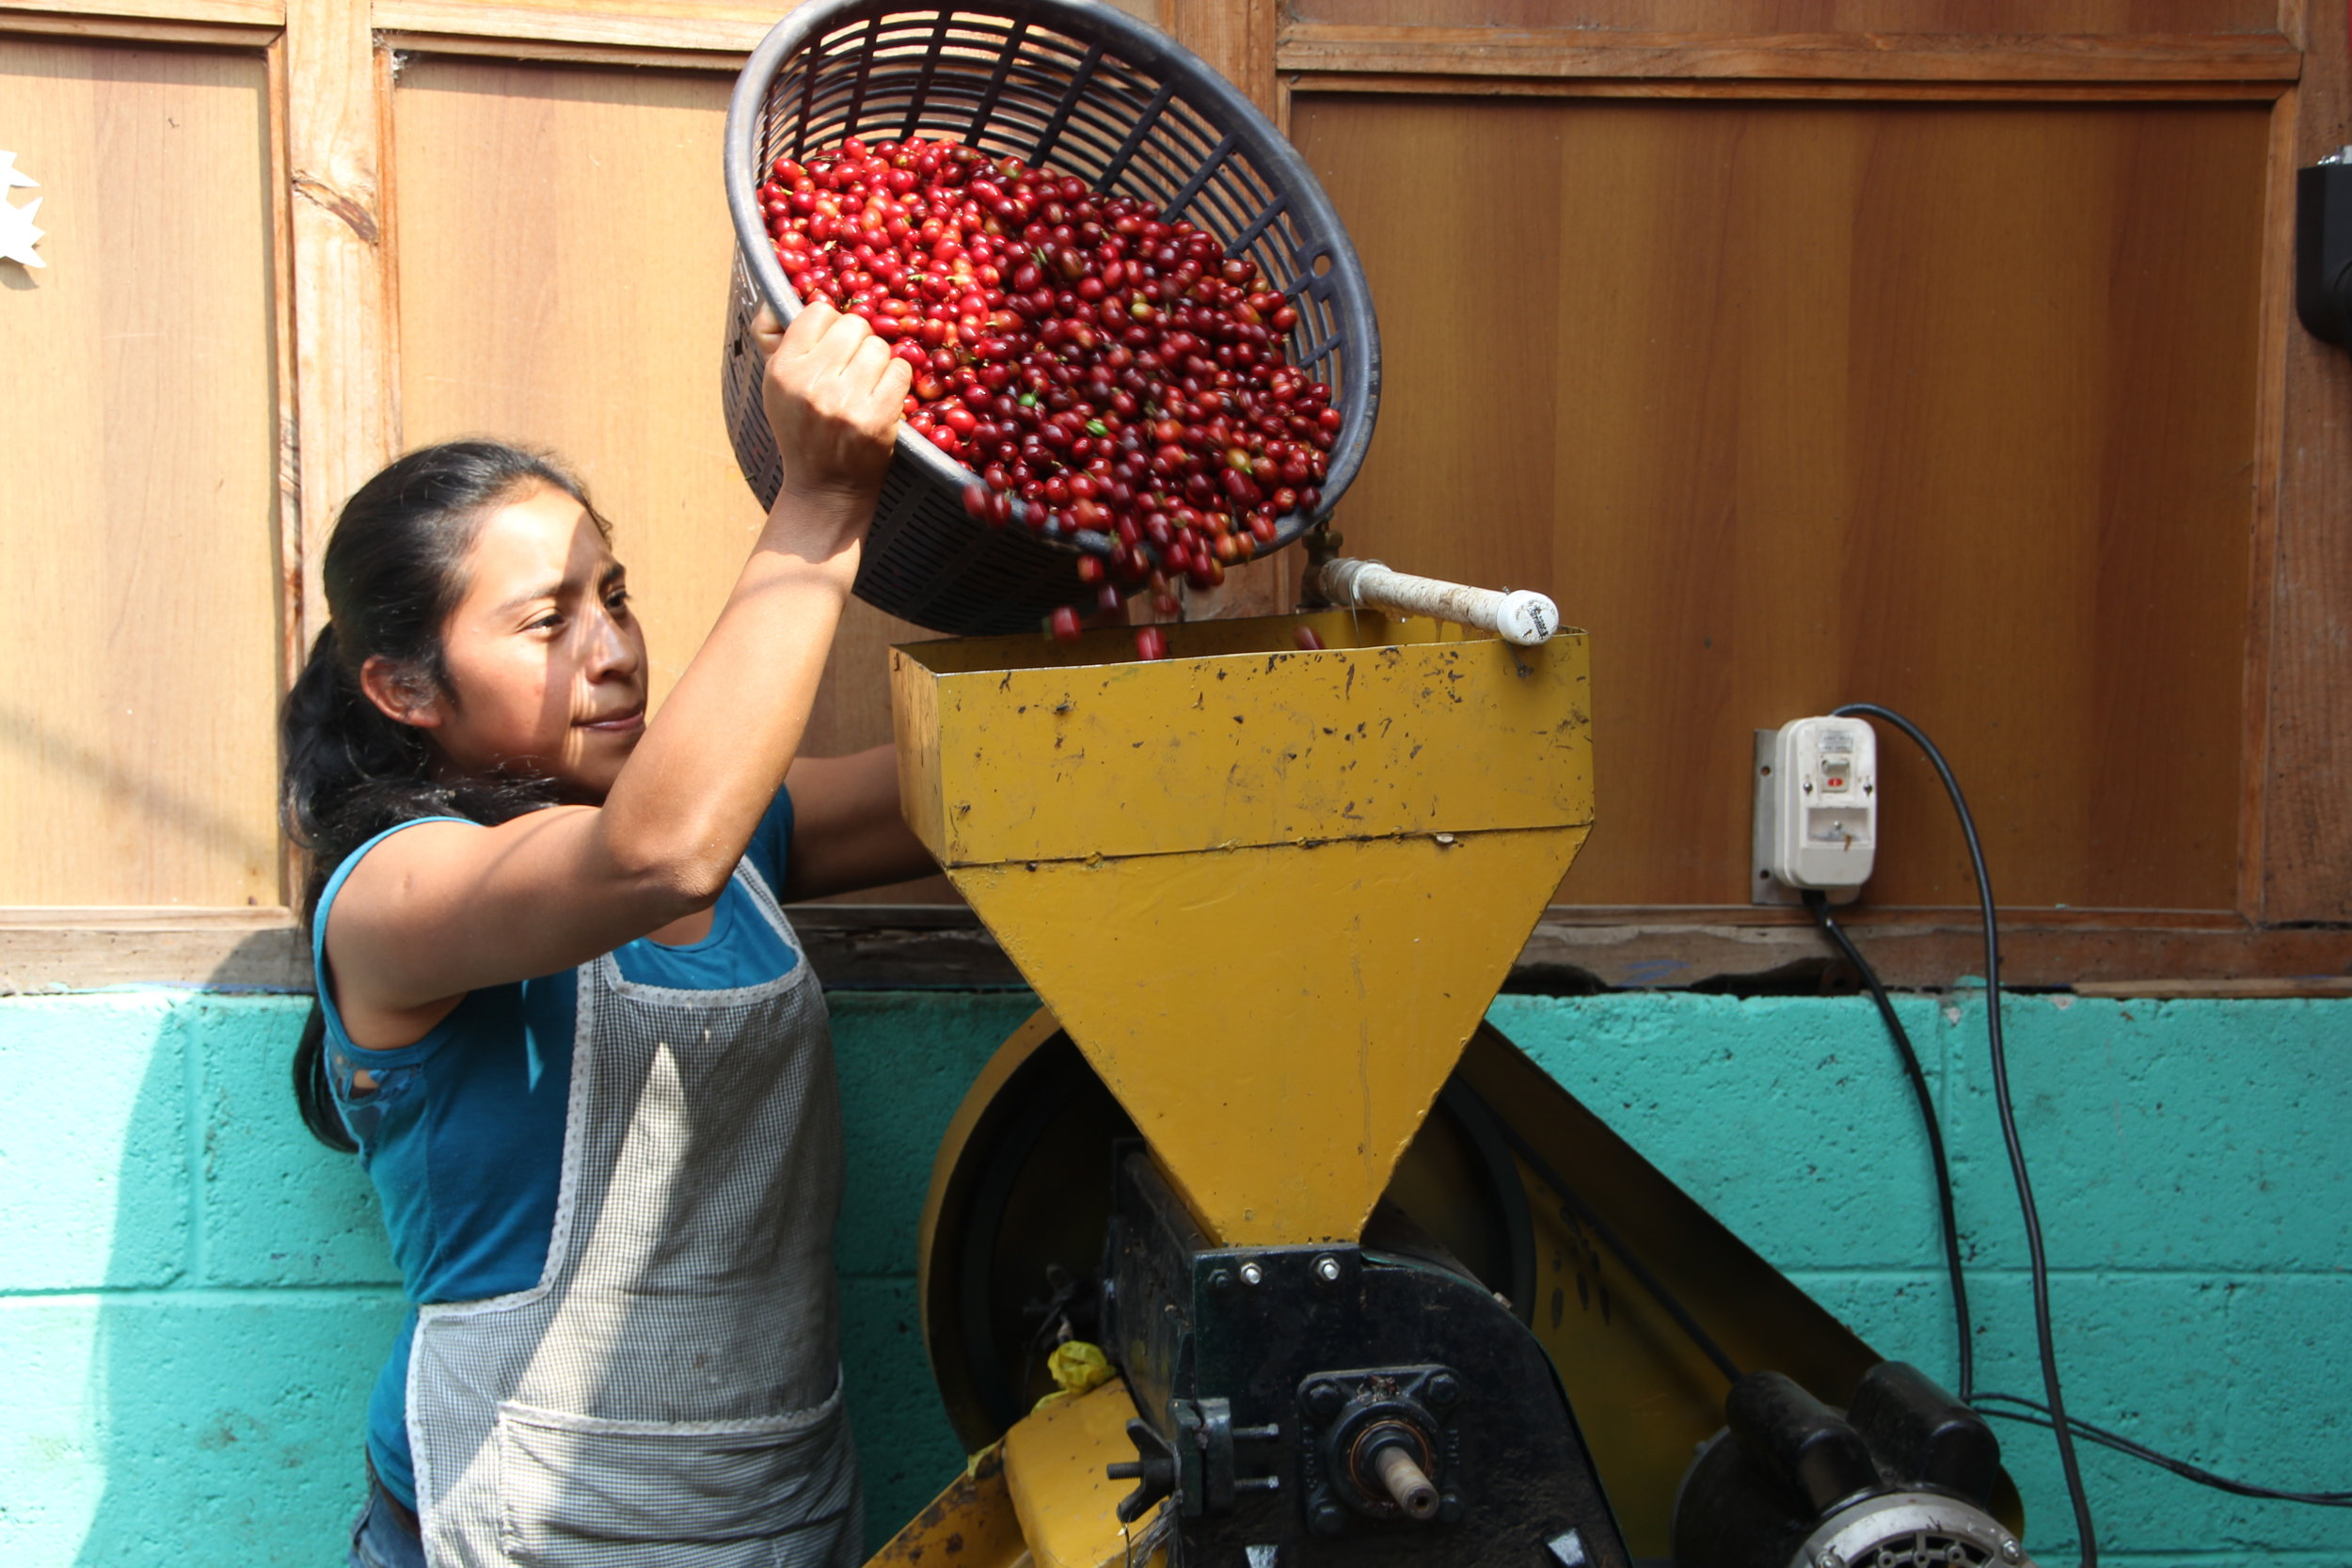 valeriana working with the coffee beans